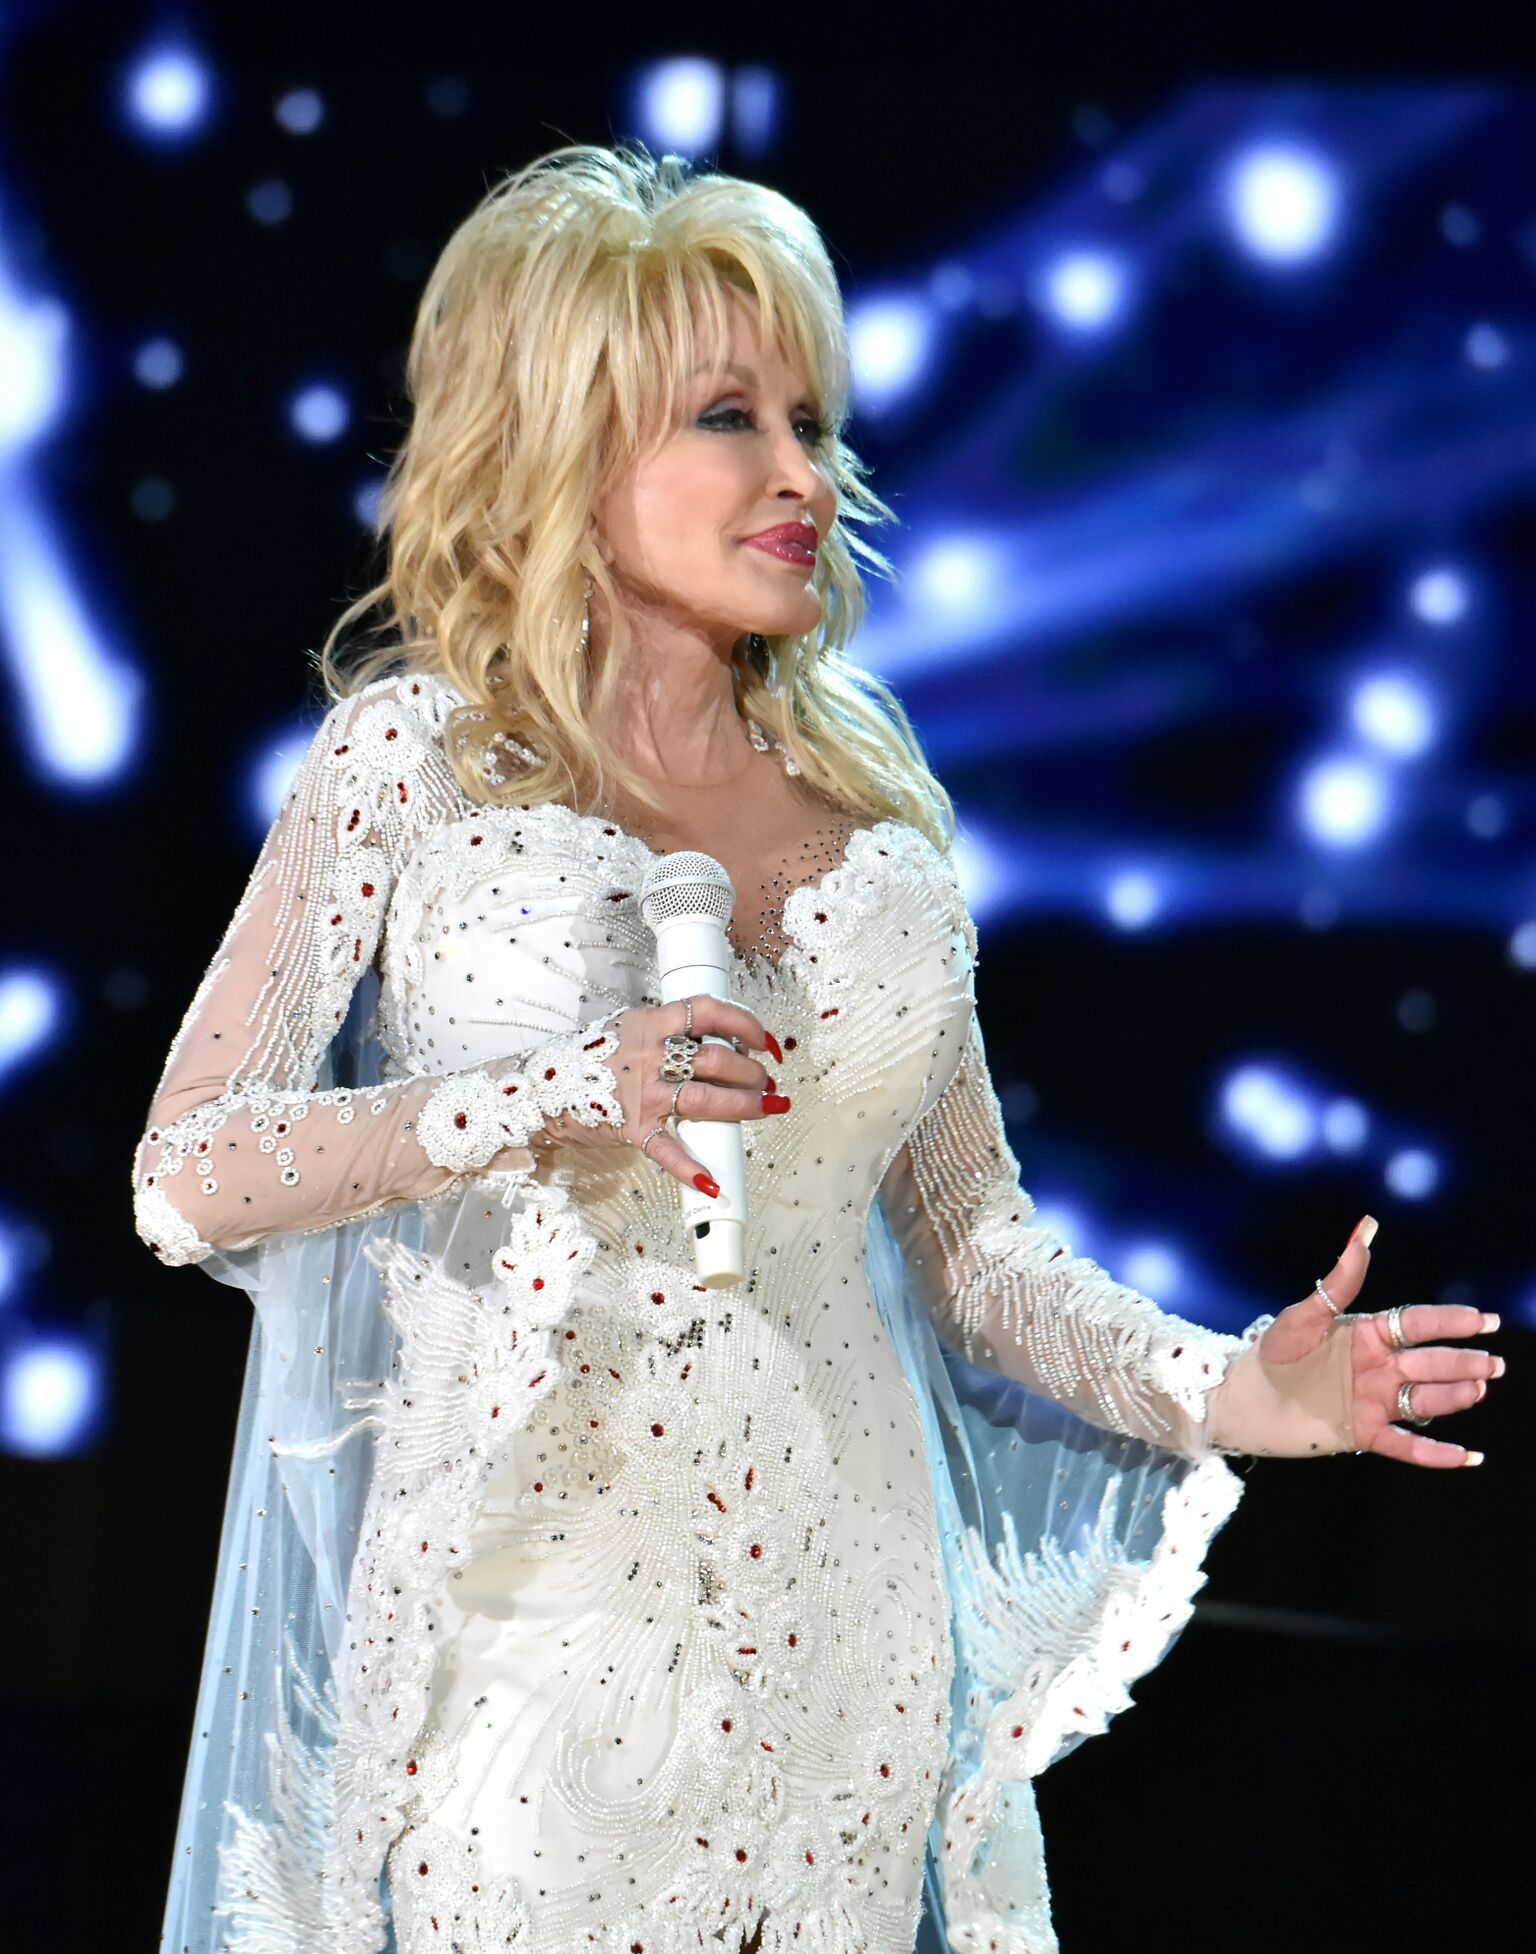 Dolly Parton performing. I Image: Getty Images.